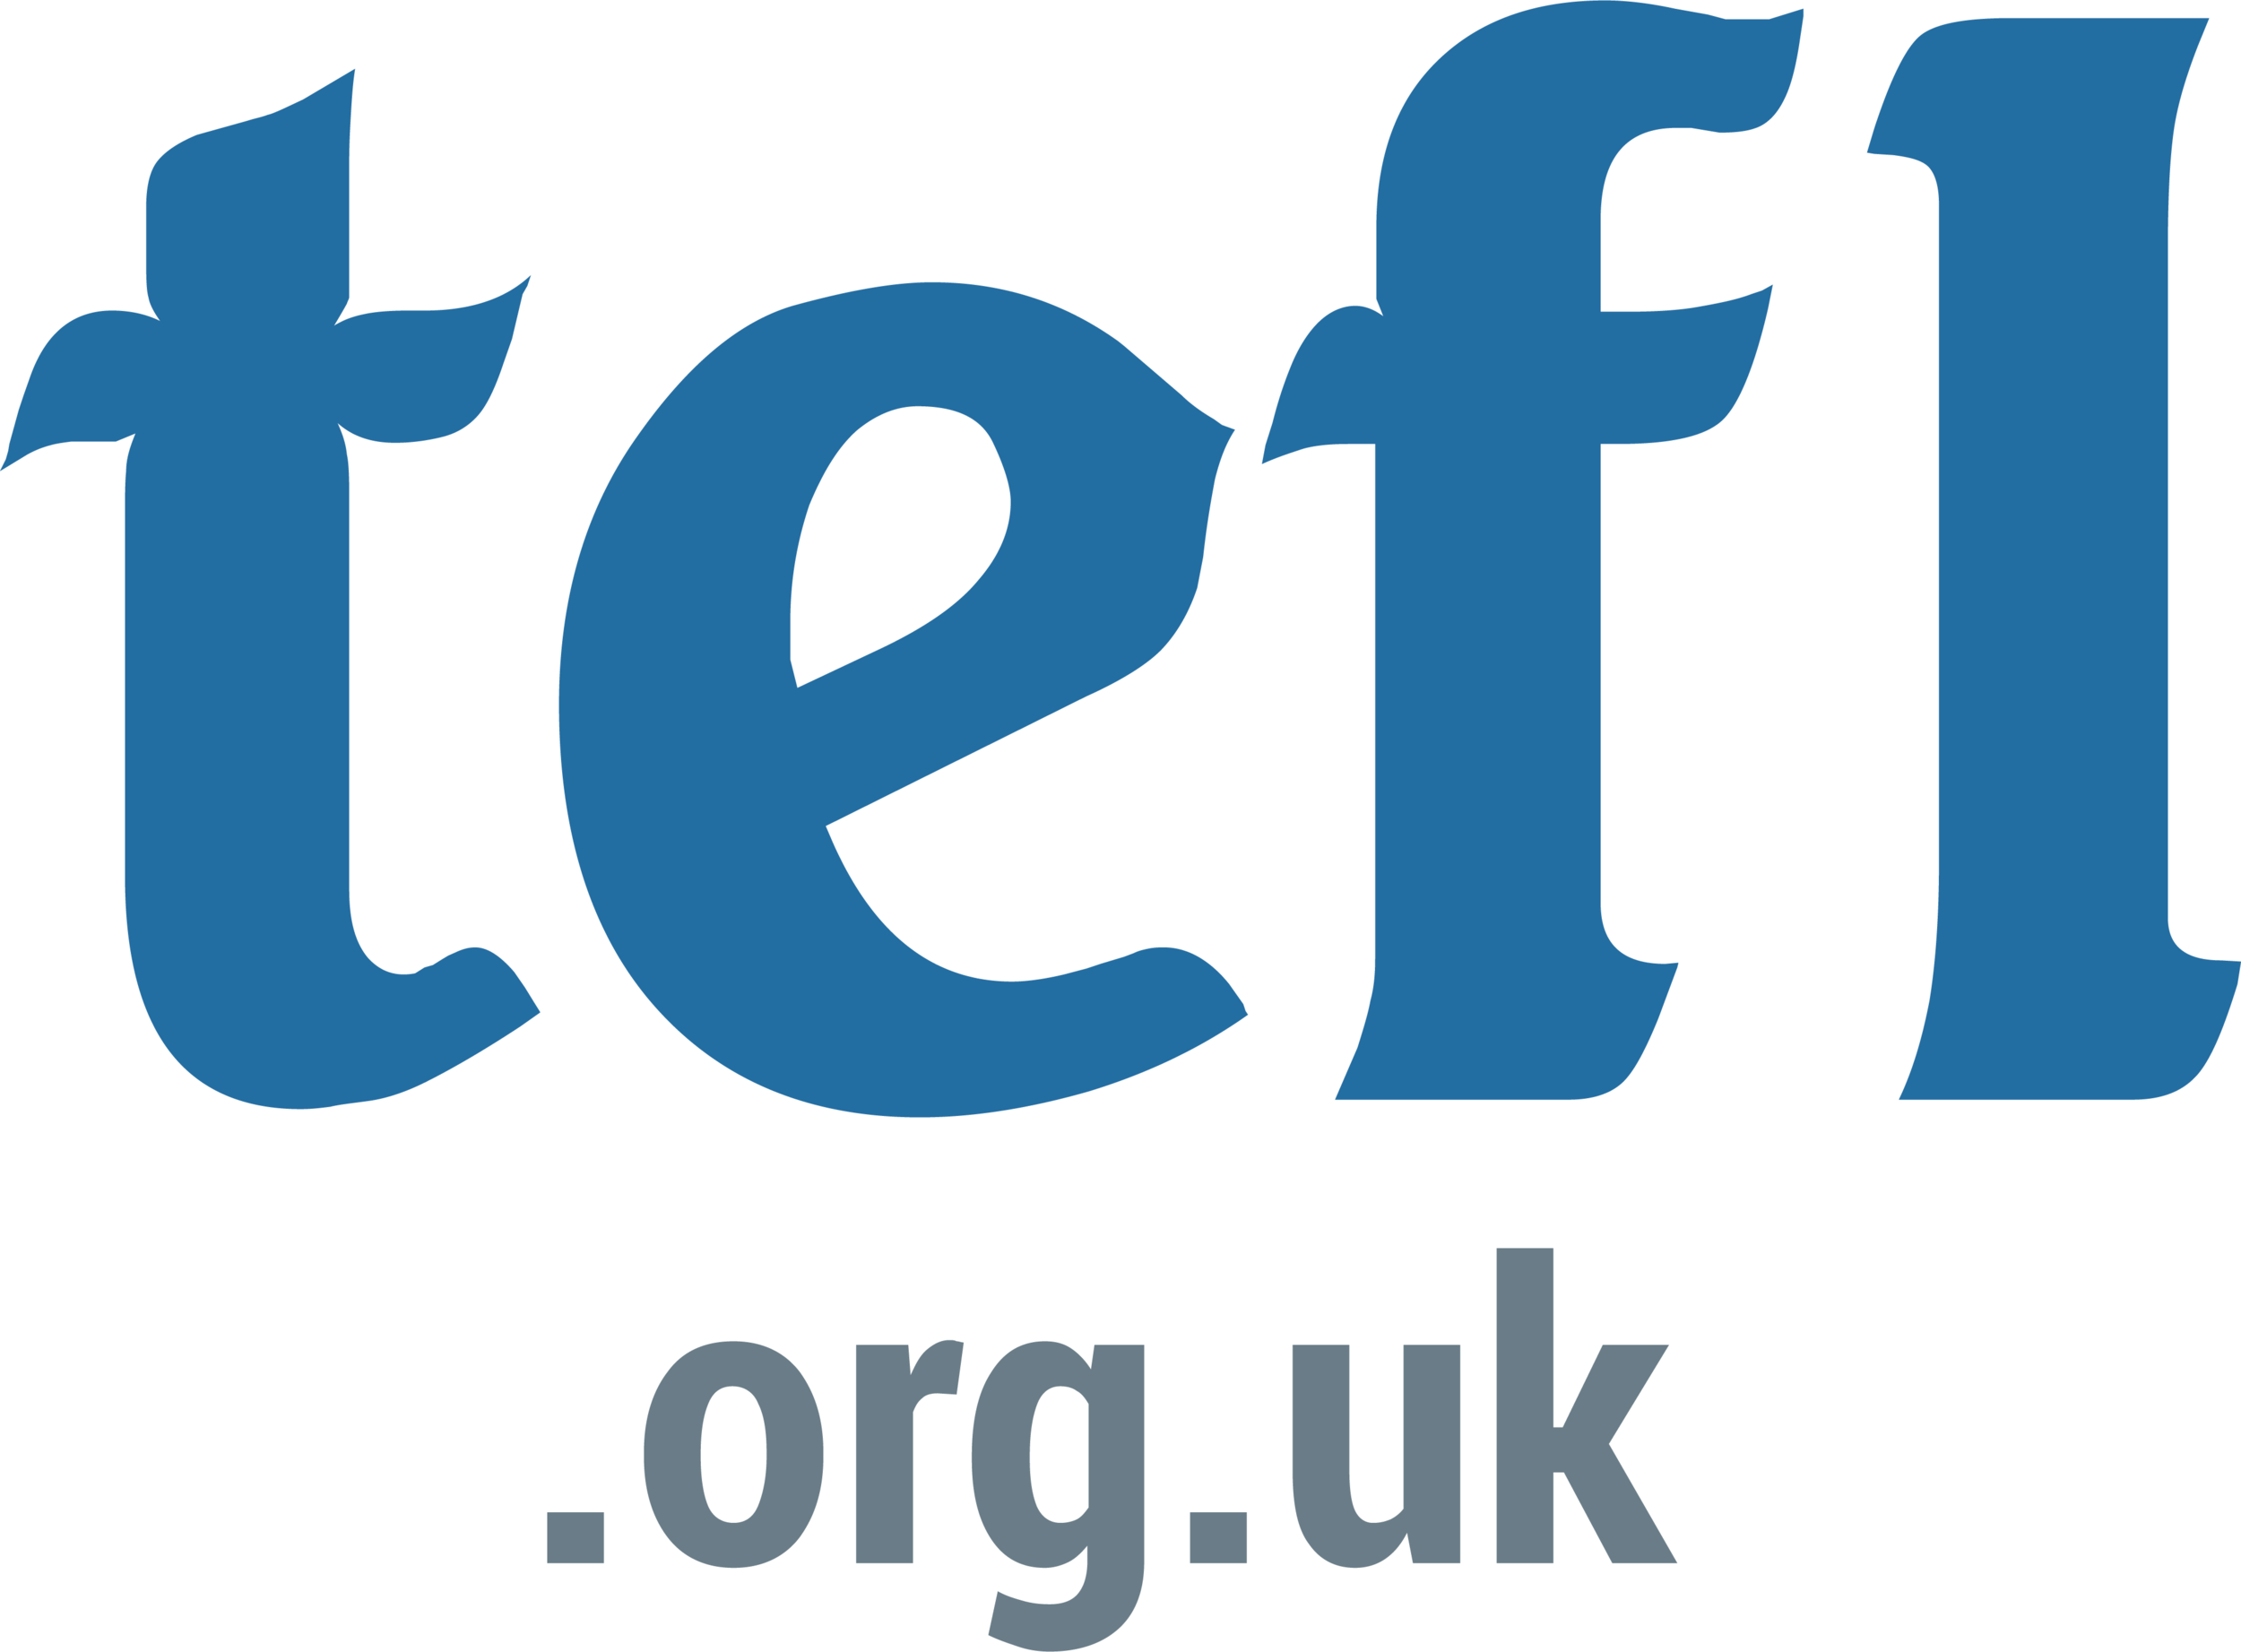 TEFL Org UK - High Res - white background.png